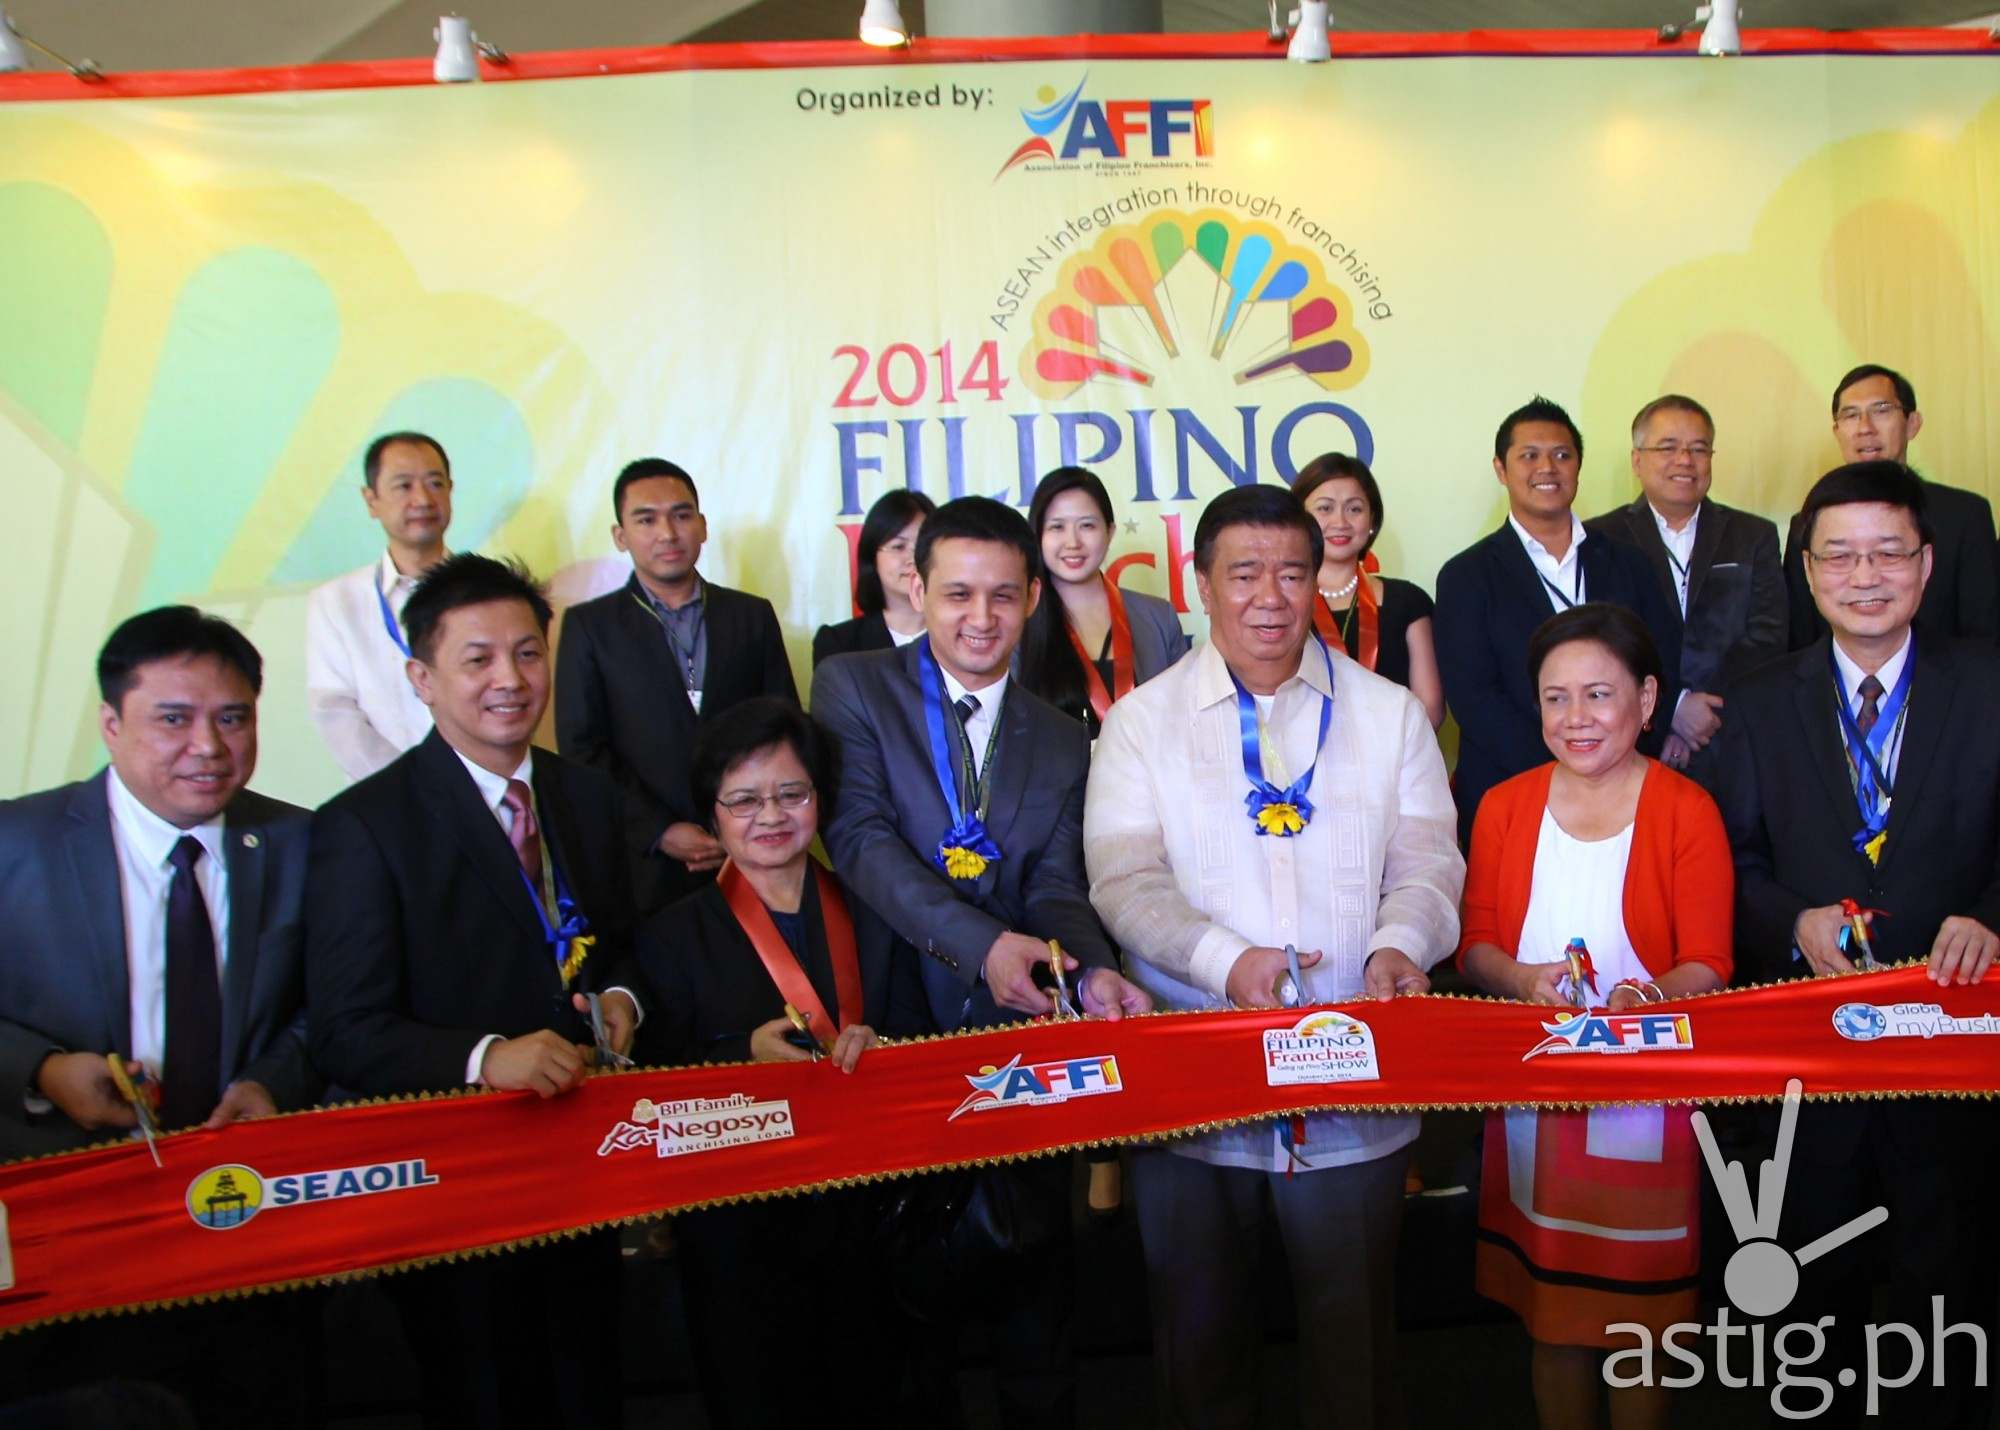 Globe Senior Vice President and Head of myBusiness Martha Sazon (fifth, second row) was among government luminaries, including Senators Franklin Drilon and Cynthia Villar (fifth and sixth, front row, respectively) as well as officials from the Association of Filipino Franchisers, Inc.'s (AFFI) who led the ceremonial ribbon cutting for the 2014 Filipino Franchise Show